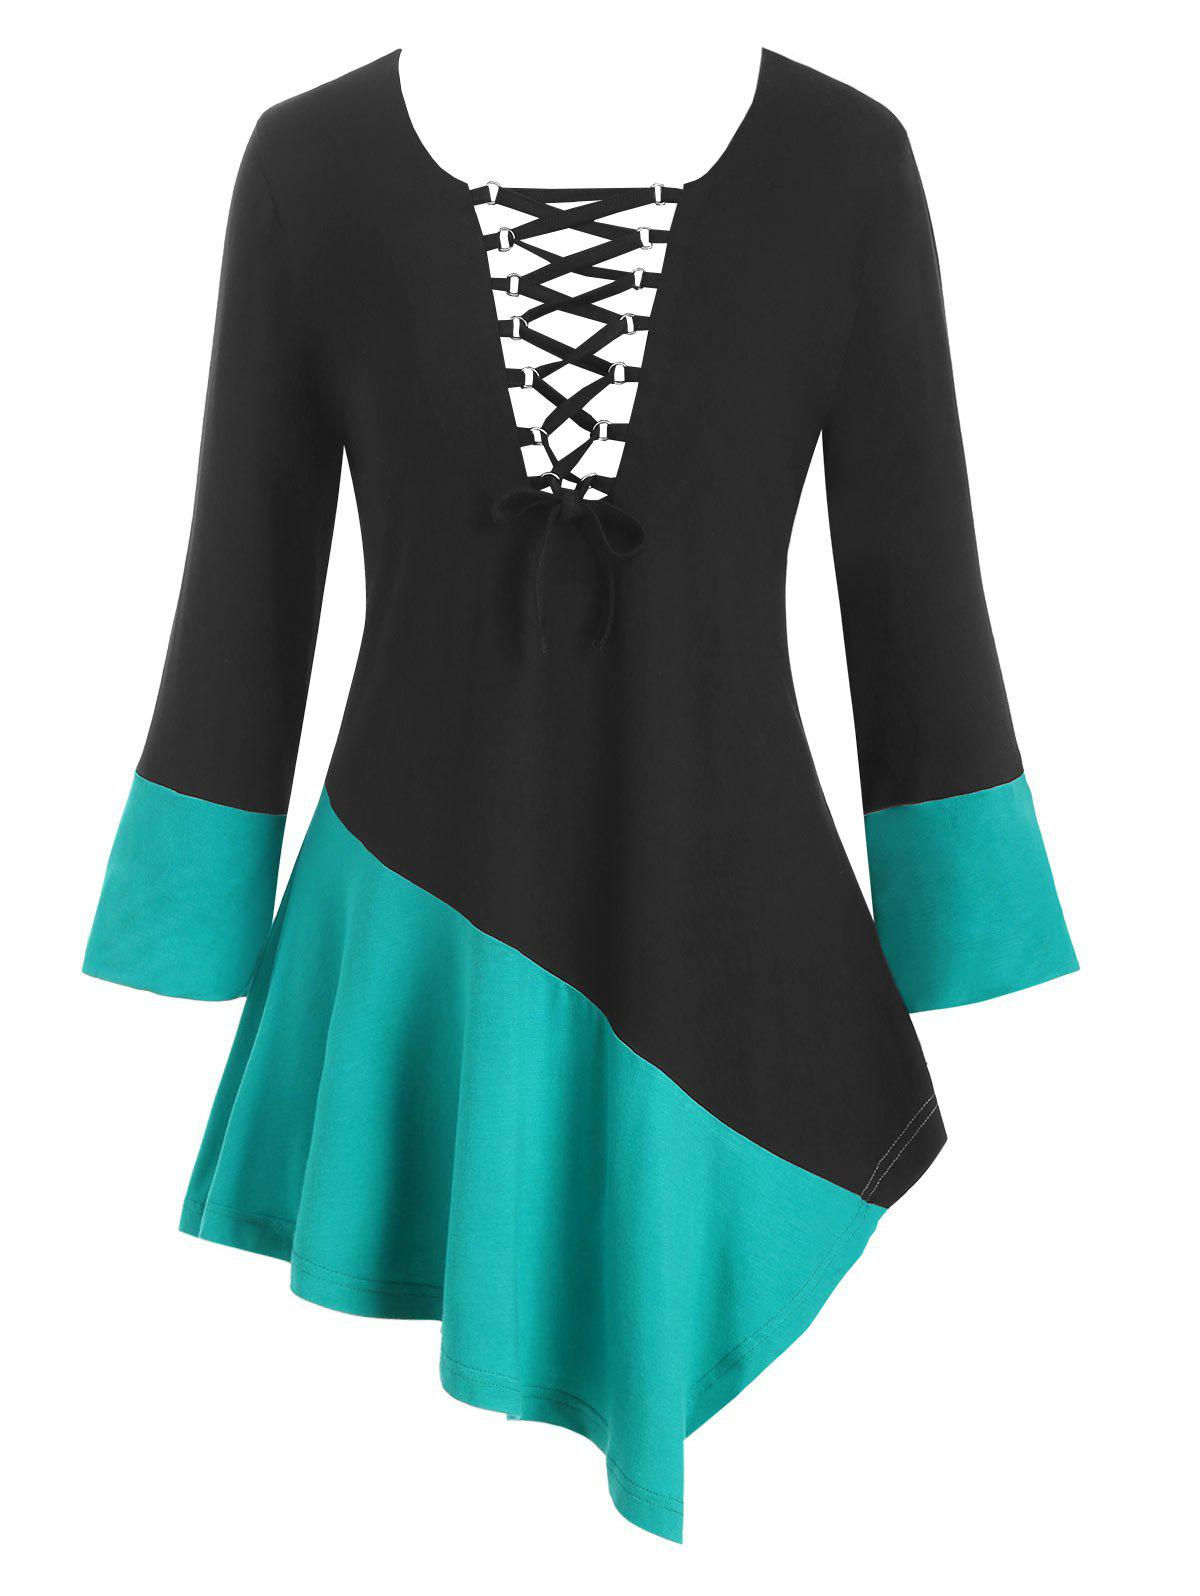 Two Tone Lace Up Asymmetrical Plus Size Top, Medium turquoise